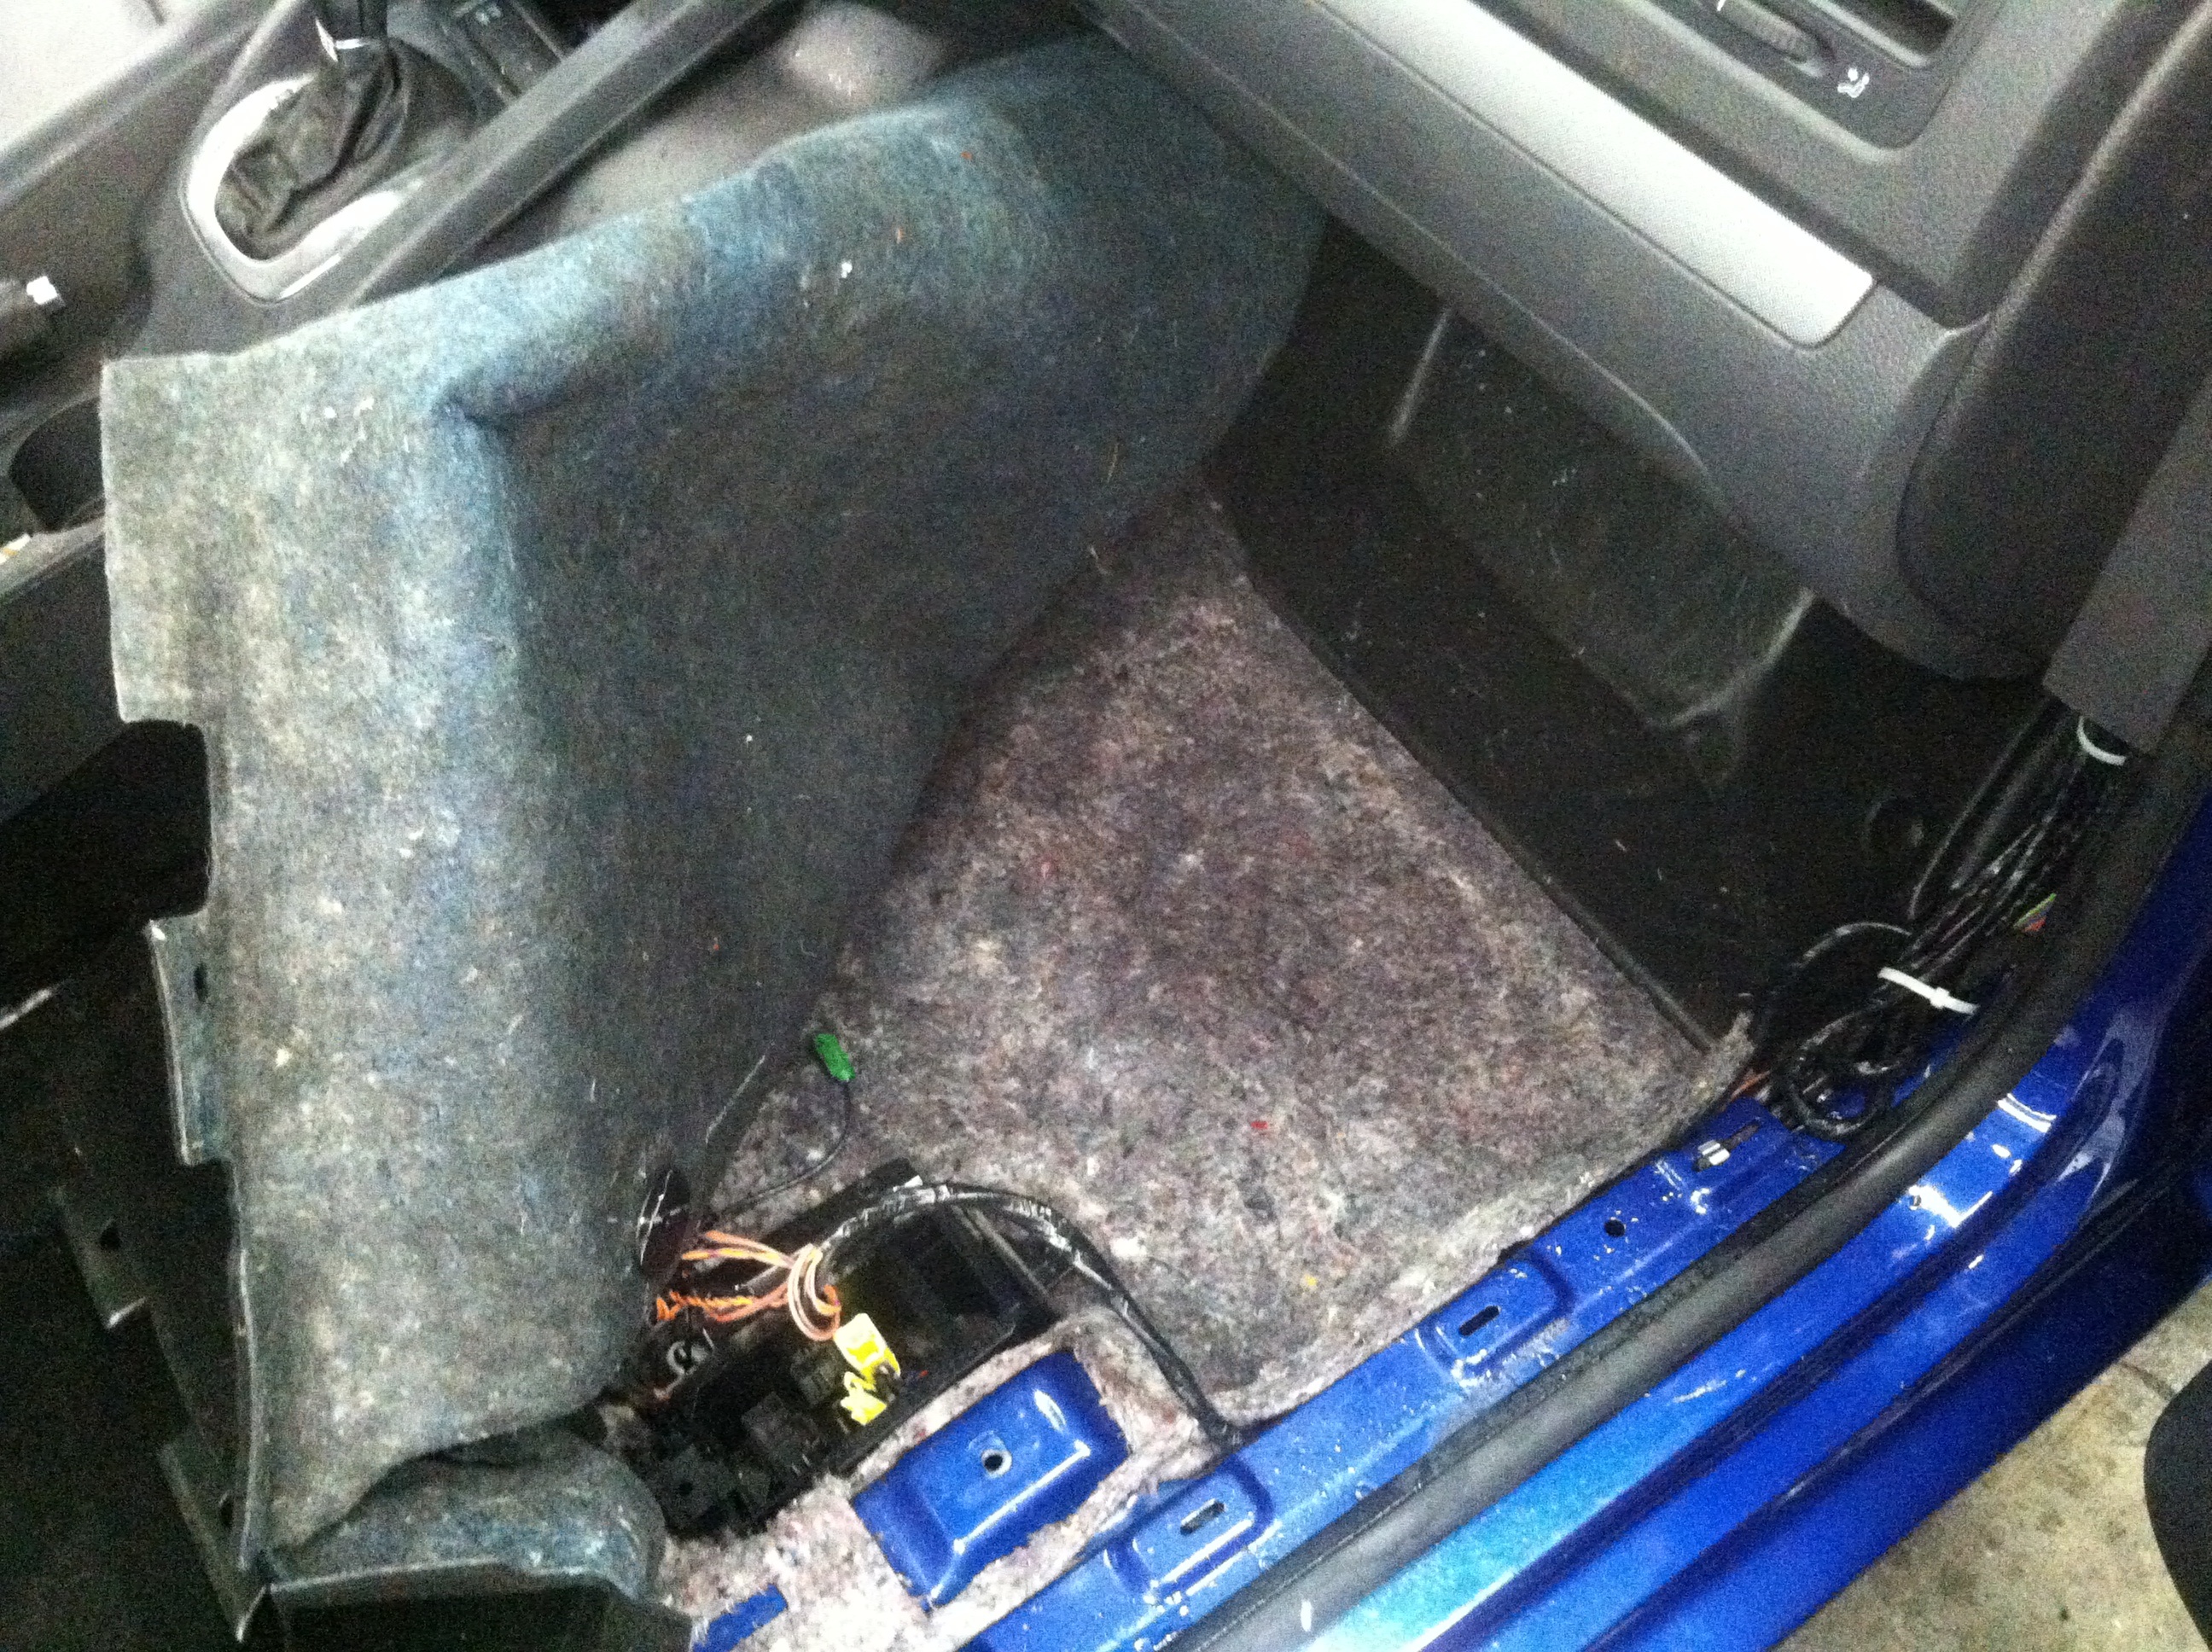 Car Water Damage Repair And Restoration Seattle Auto Detail Vehicle Wiring Specialists Vw26 Wet Insulation